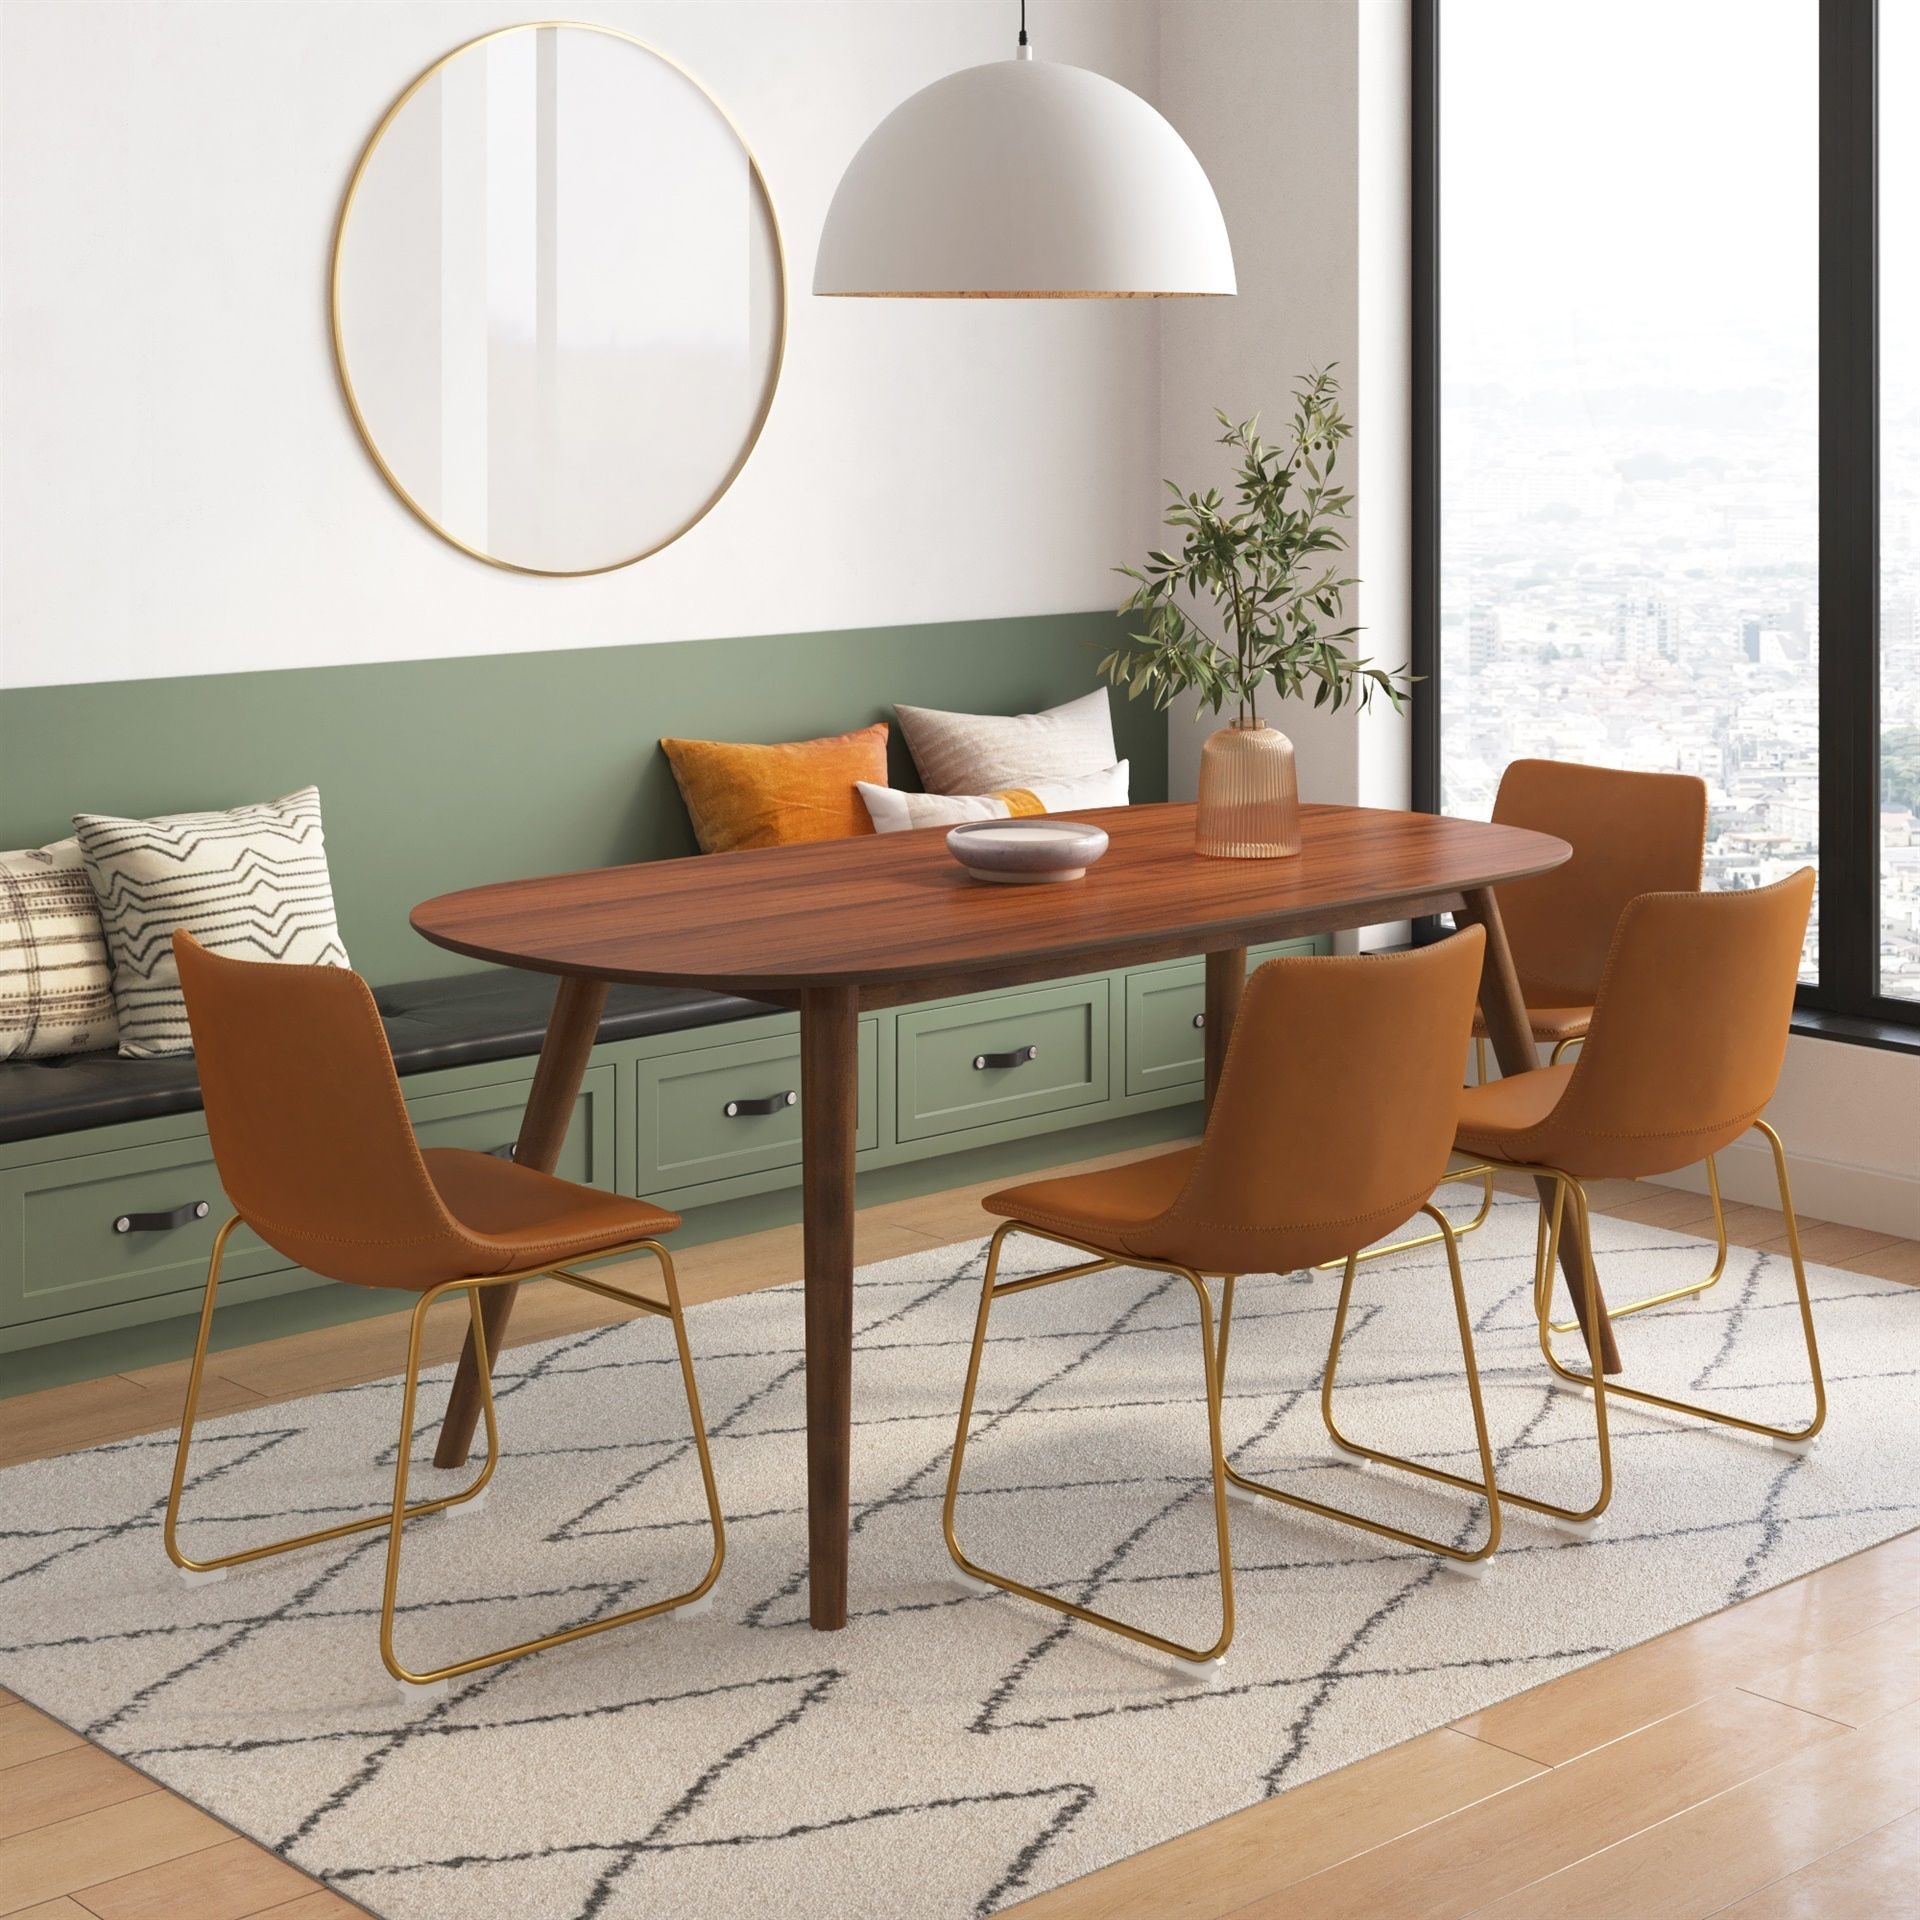 Phoenix Dining Table In 2021 Comfortable Dining Chairs Dining Chairs Midcentury Modern Dining Chairs